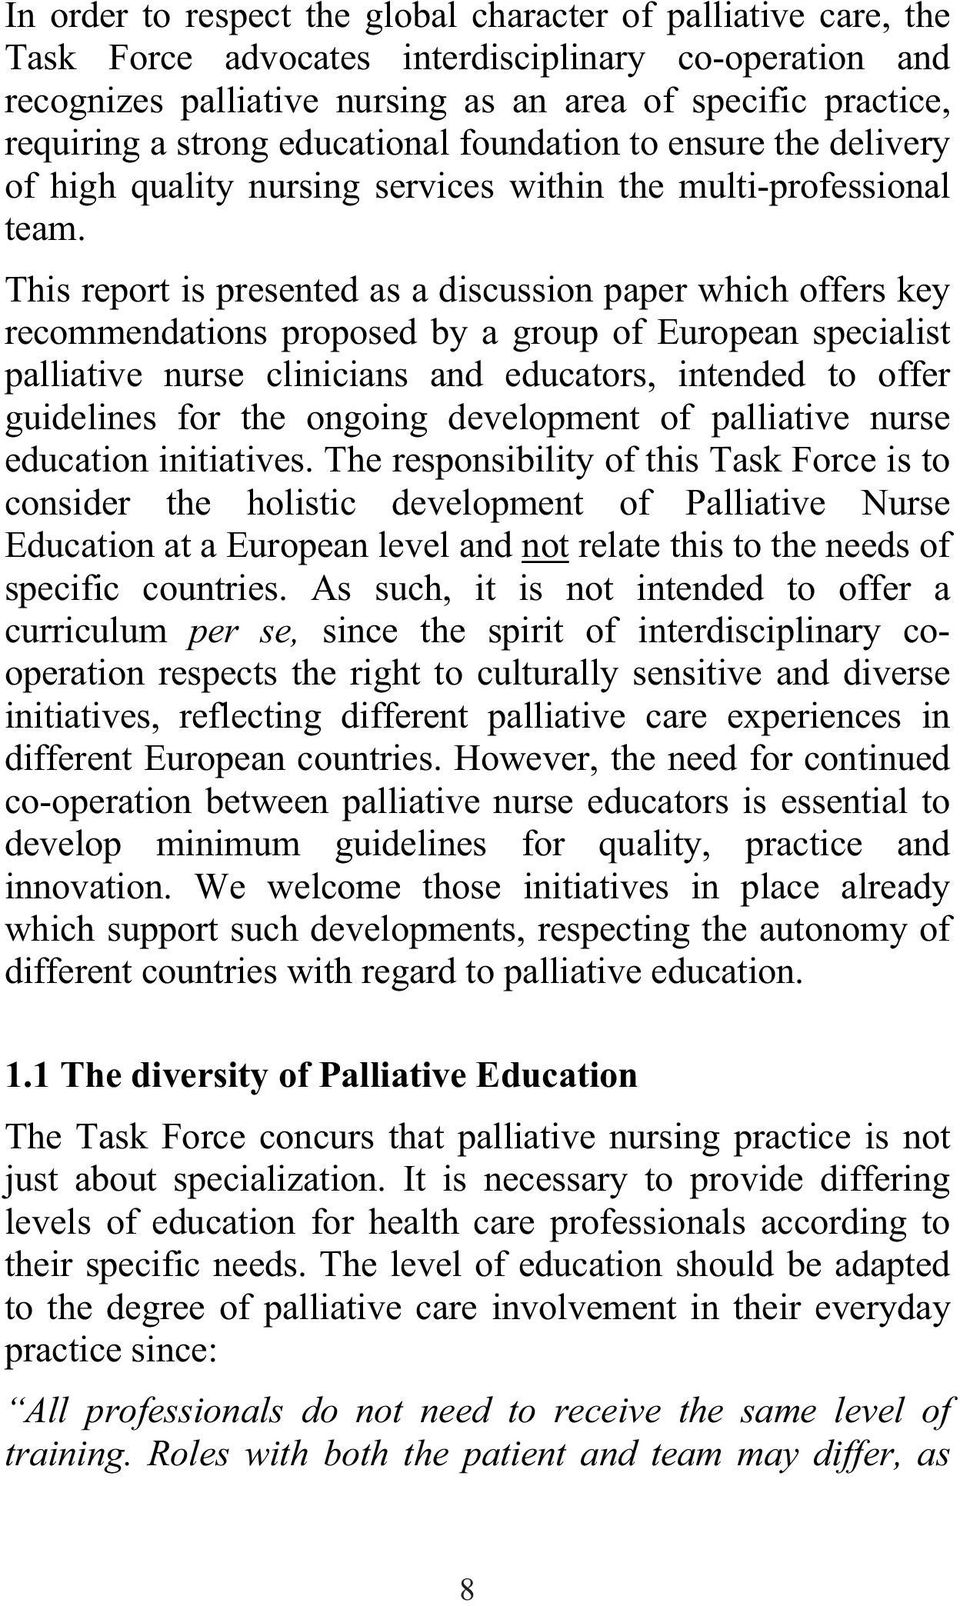 This report is presented as a discussion paper which offers key recommendations proposed by a group of European specialist palliative nurse clinicians and educators, intended to offer guidelines for